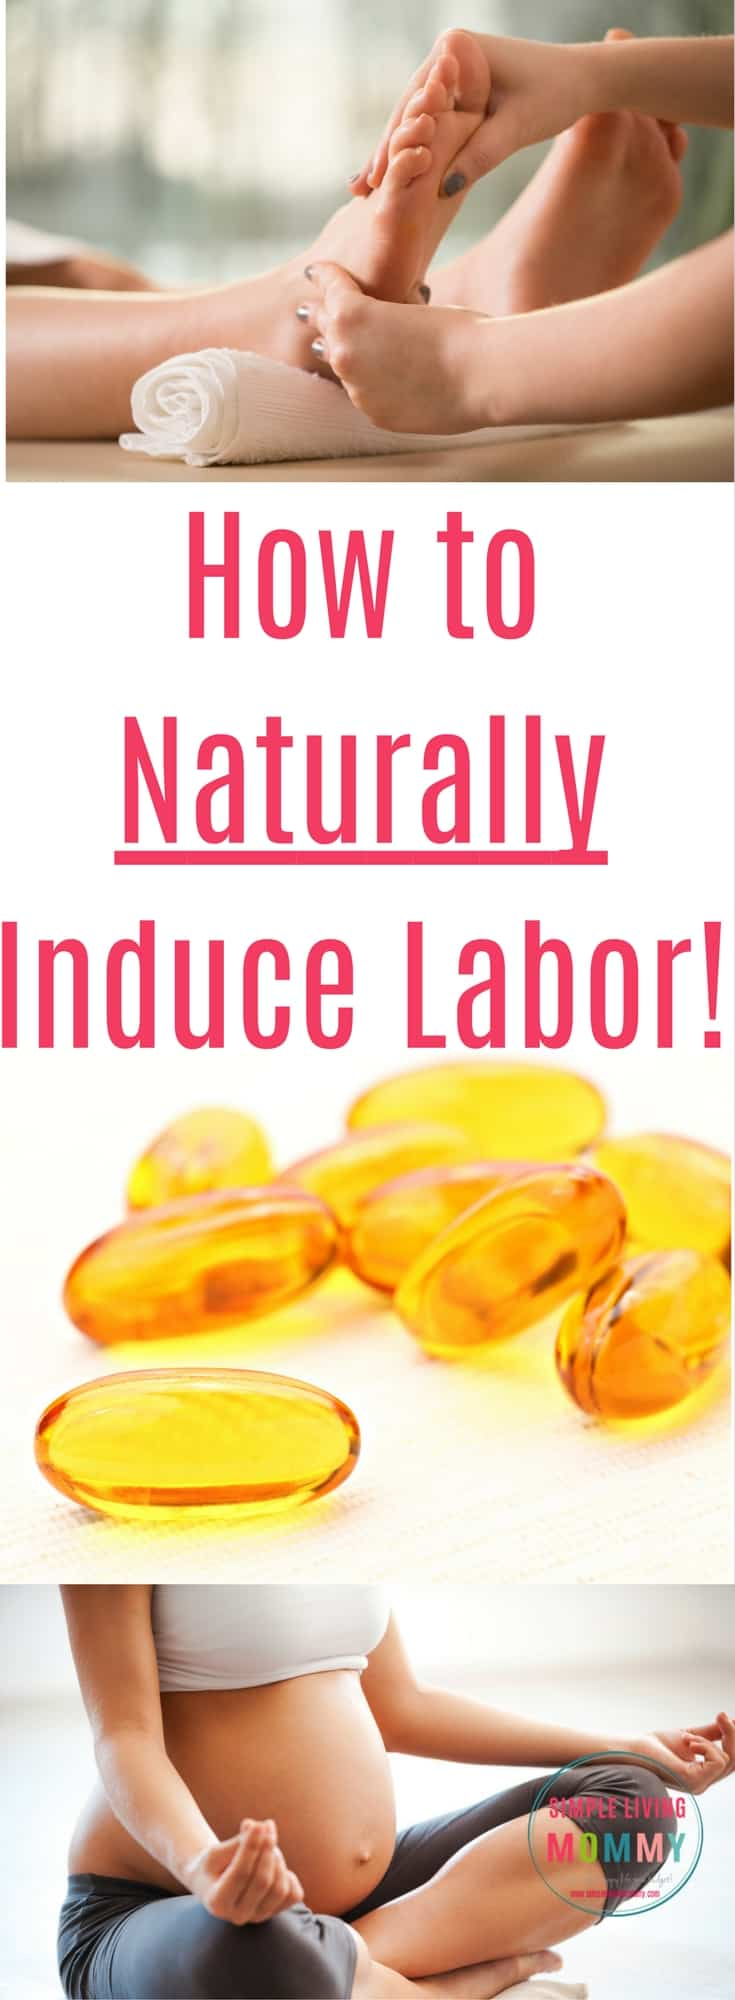 Whether you've gone overdue with your pregnancy or you're trying to avoid induction, there are tons of natural techniques you can try! Here are some natural labor induction techniques to try, plus one that worked for this blogger to start her labor!